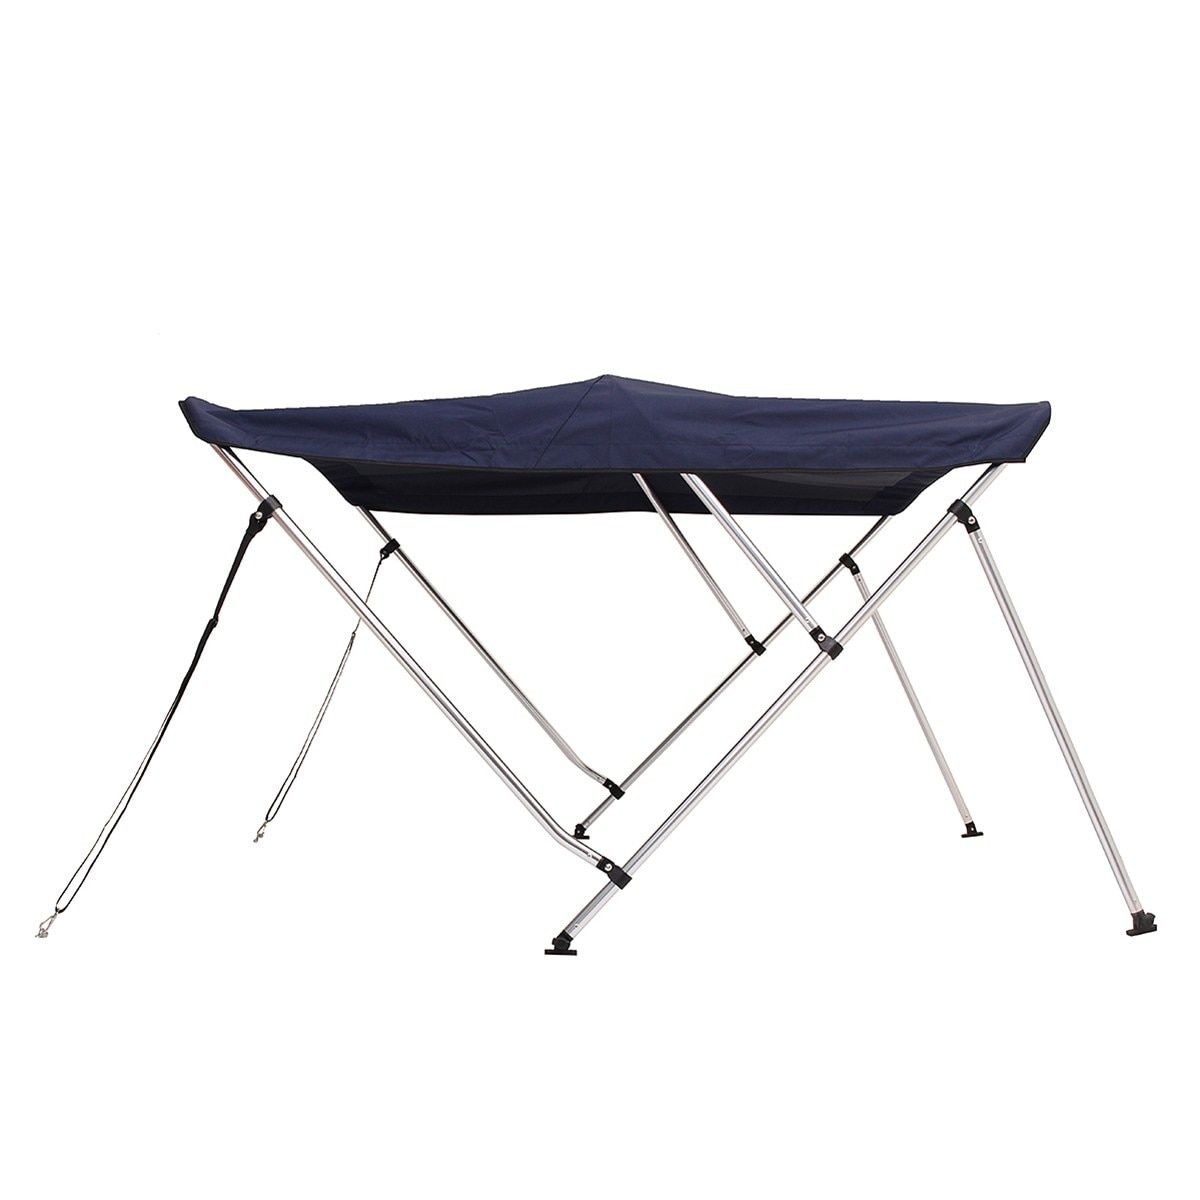 4 Bows 3 Bows Boat Aluminum Canopy Top Cover 8ft 6ft Long Width 600D Support Poles 85